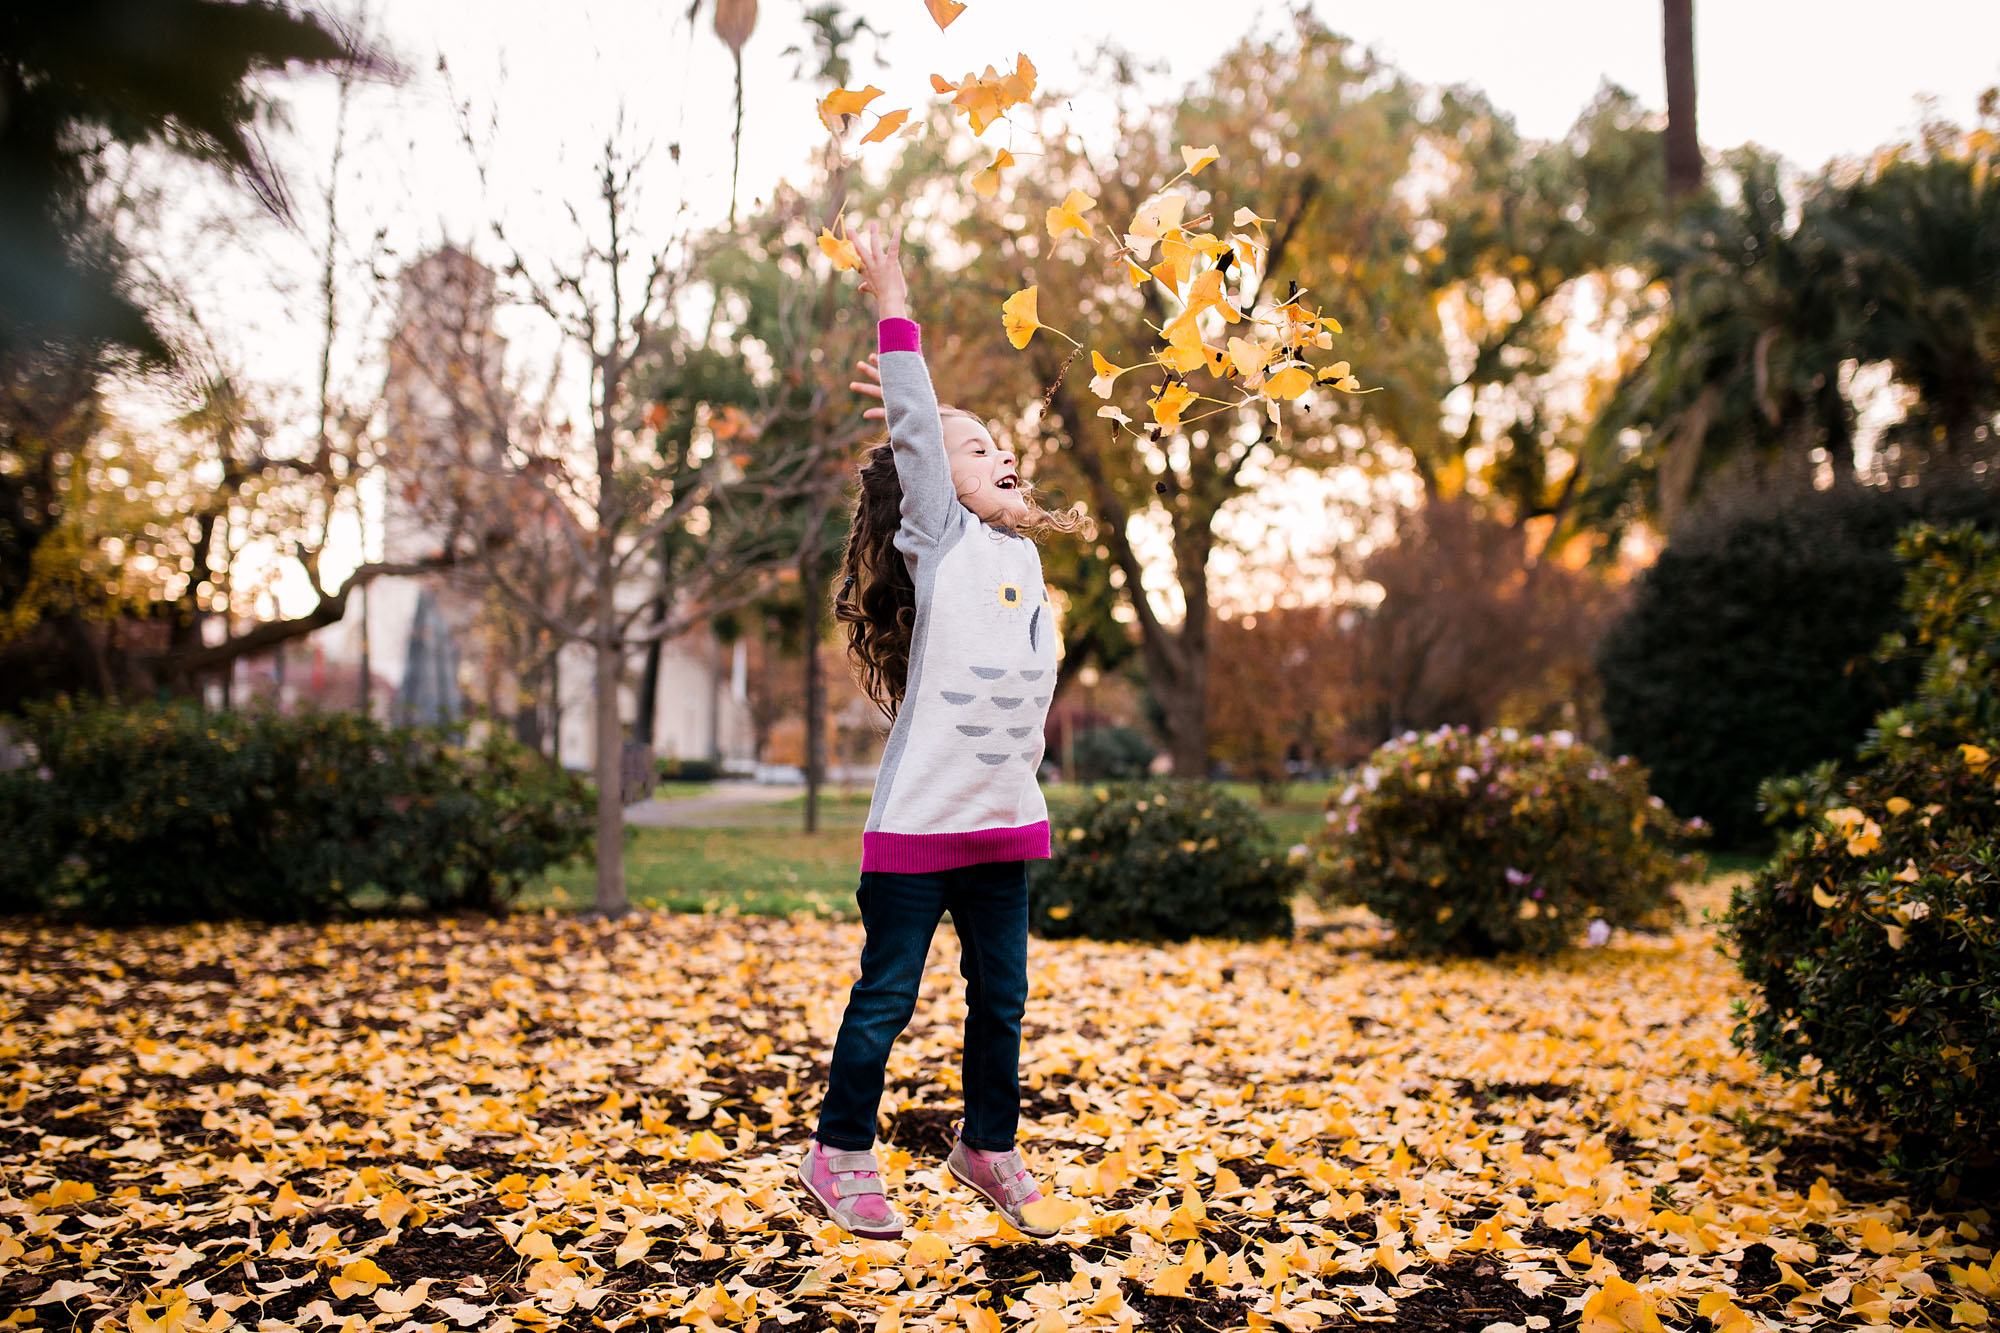 A girl joyfully throws leaves in the air during a lifestyle photo shoot with photographer Amy Wright, based out of Roseville, California.